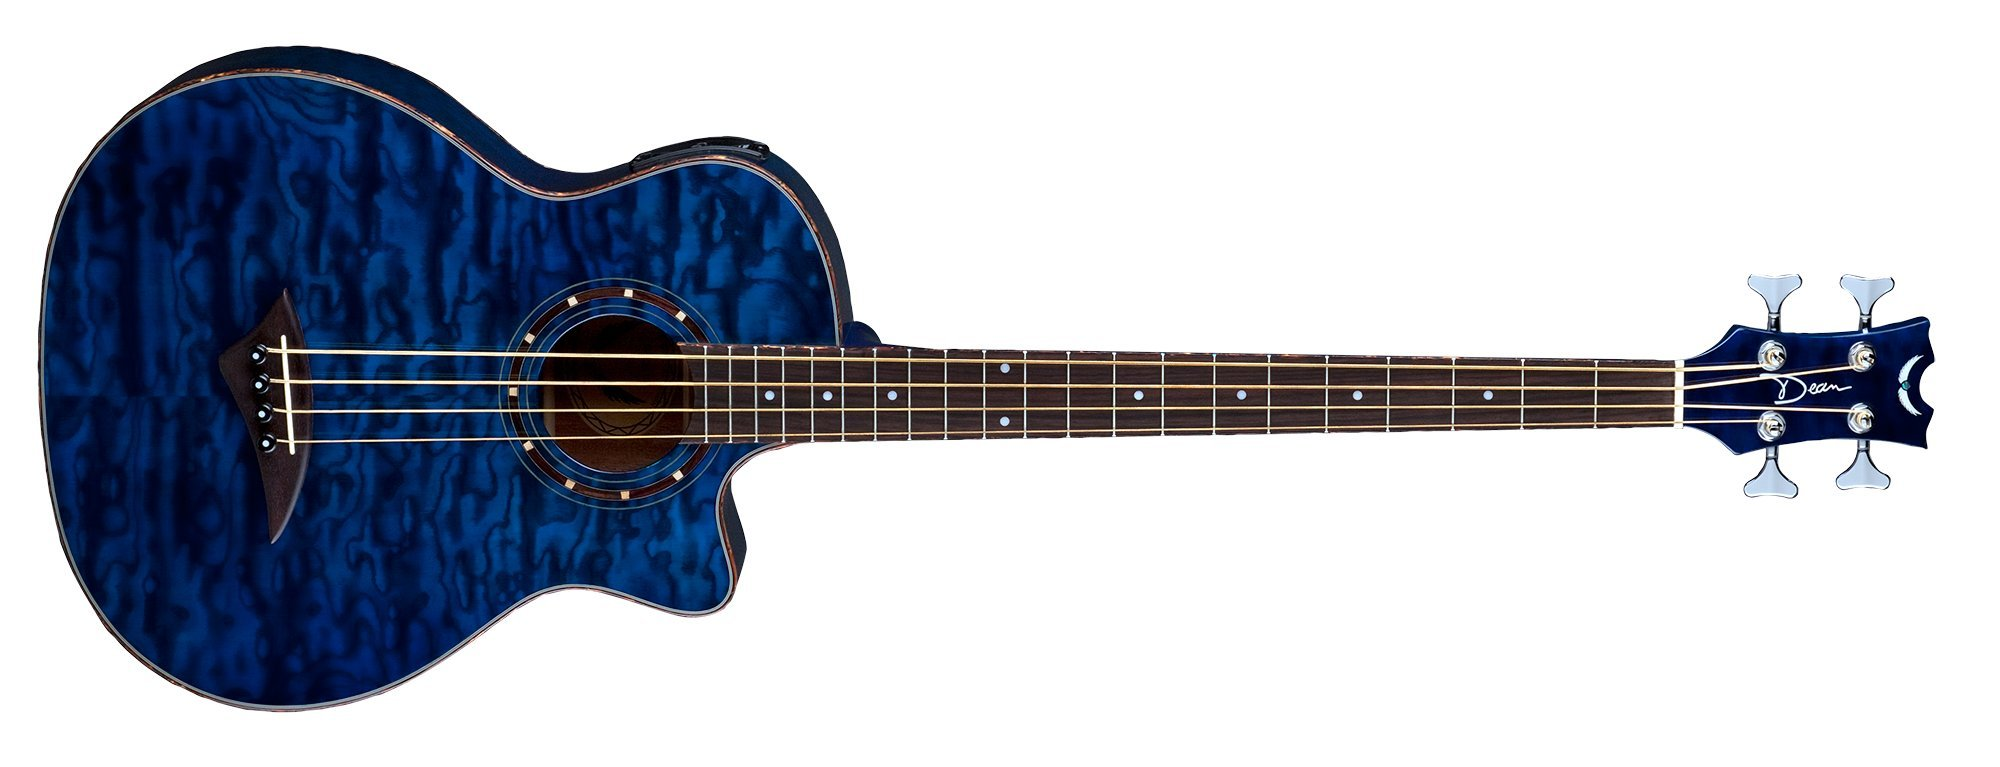 Dean EQABA TBL Exotica Quilt Ash Acoustic/Electric Bass Guitar with Aphex, Trans Blue